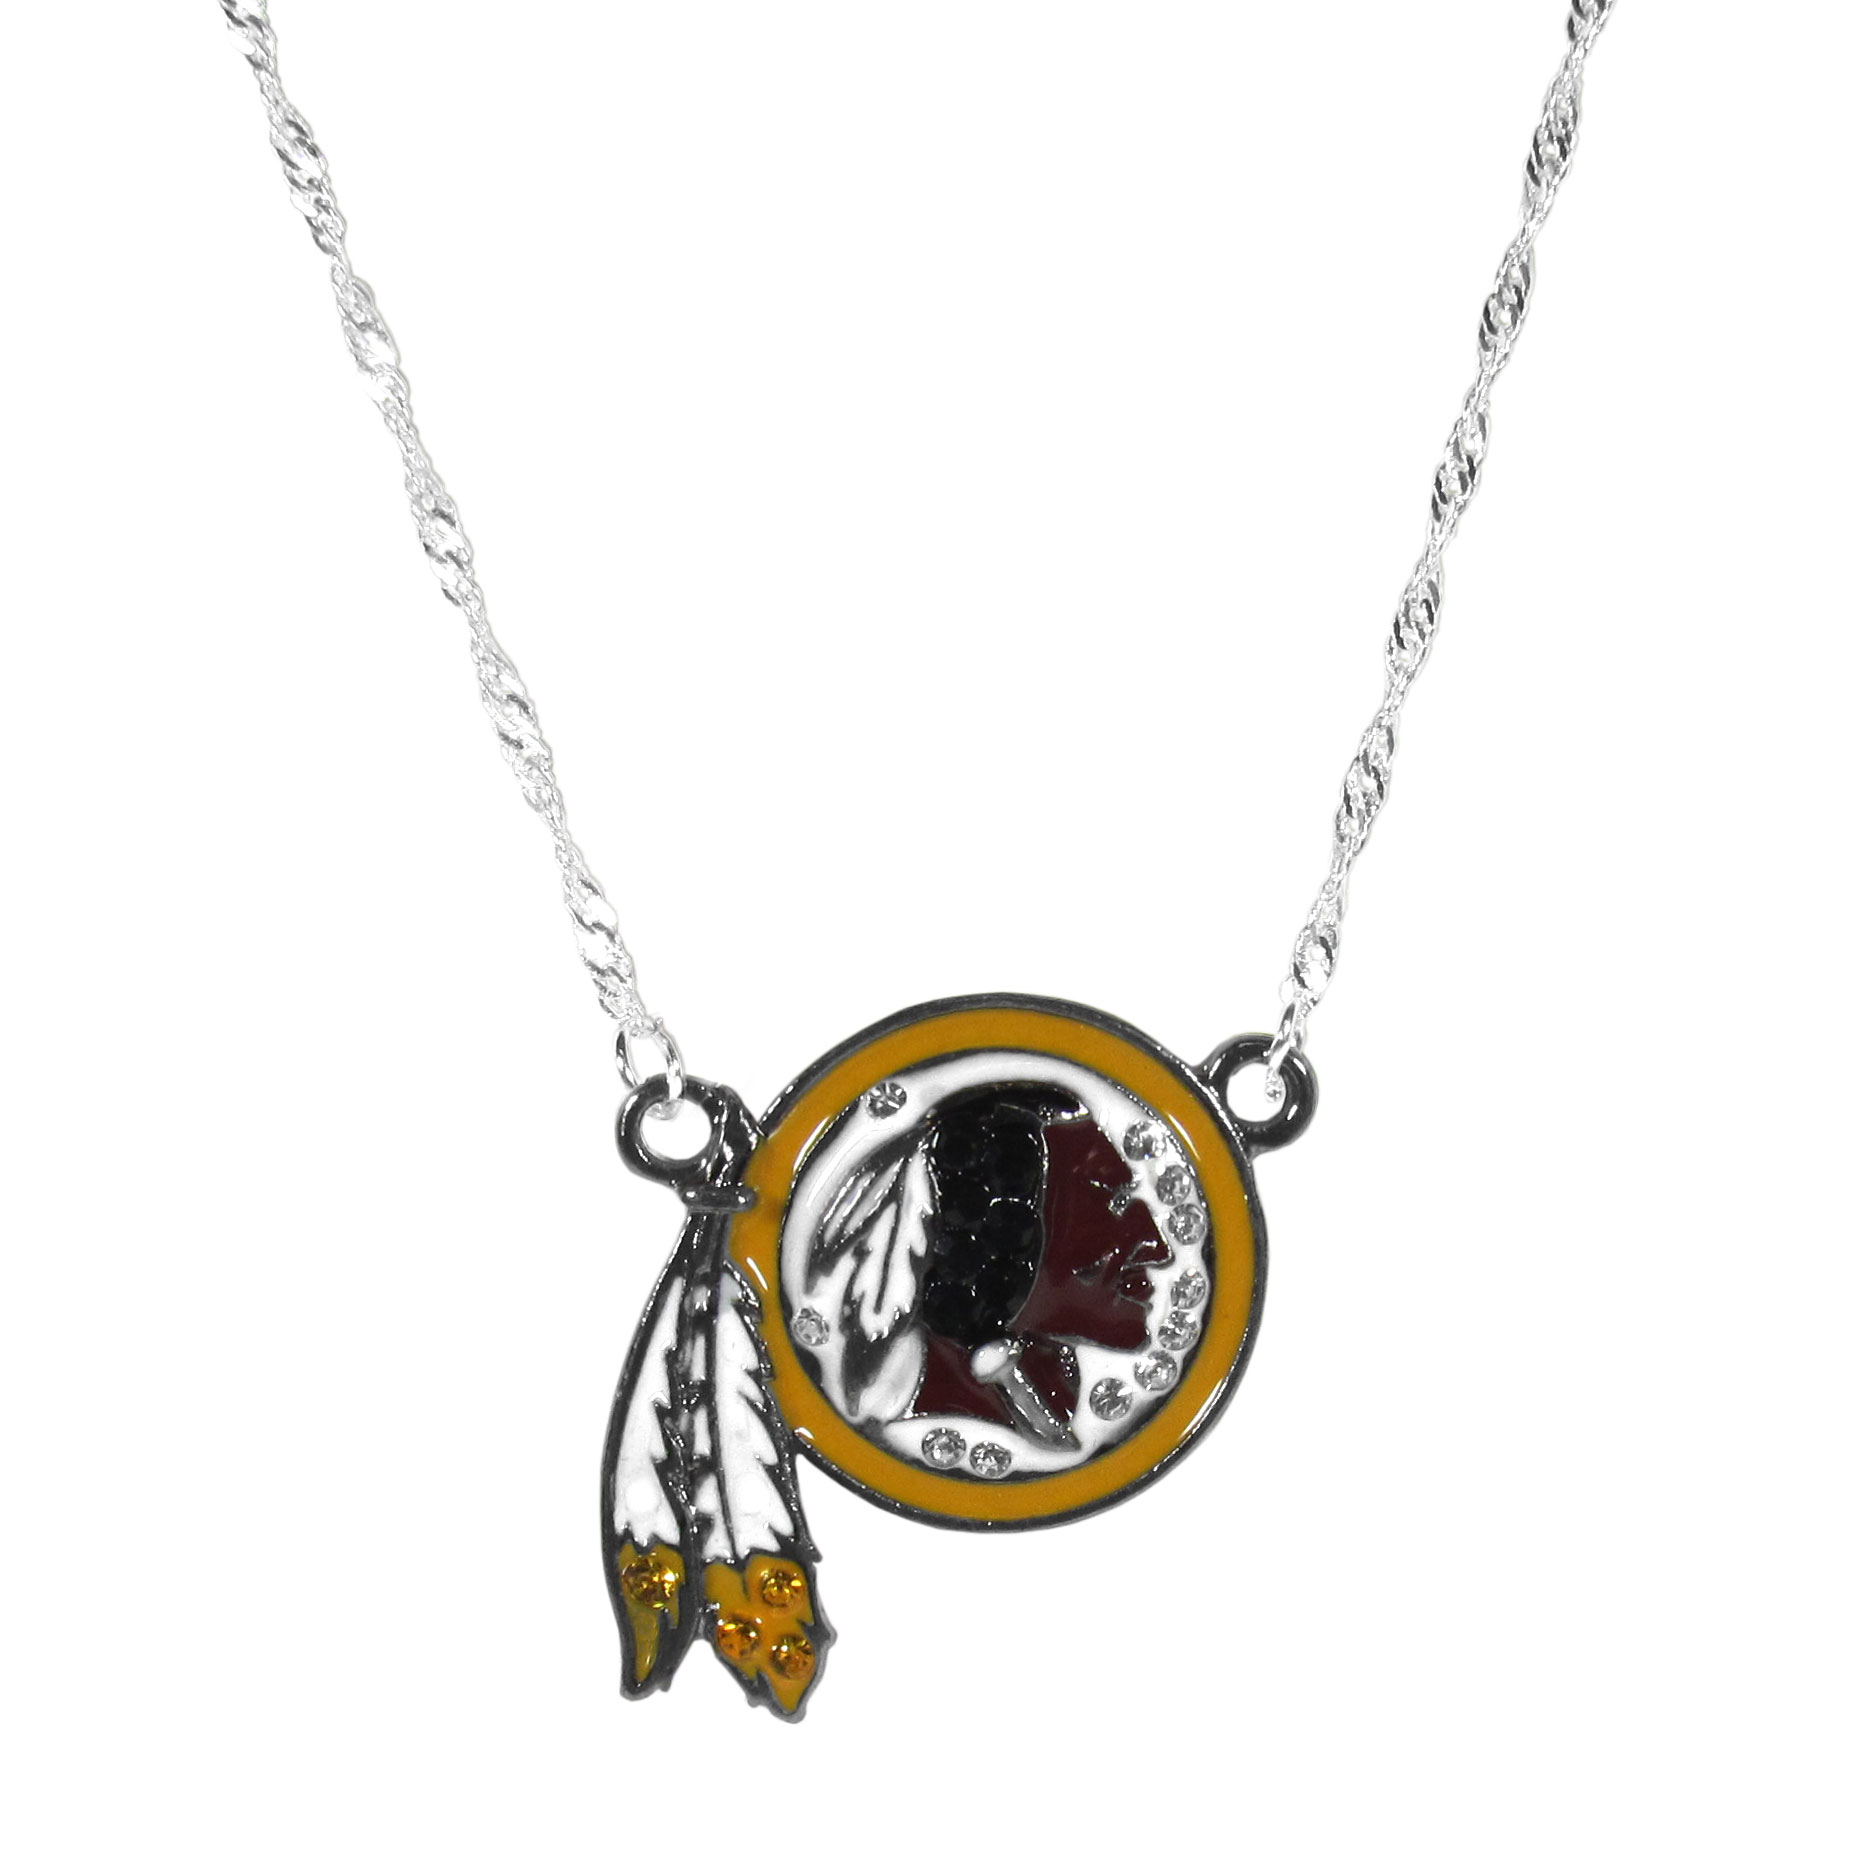 Washington Redskins Crystal Logo Necklace - This is a must-have fan accessory with a delicately beautiful 16 inch silver plated chain and eye-catching, large Washington Redskins charm with tons of sparkling team colored crystals. The trendy look is finished with detailed team colors and the chain can be adjusted with a 2 inch extender. The bold look makes a statement on game day and the classic style is chic enough for everyday.